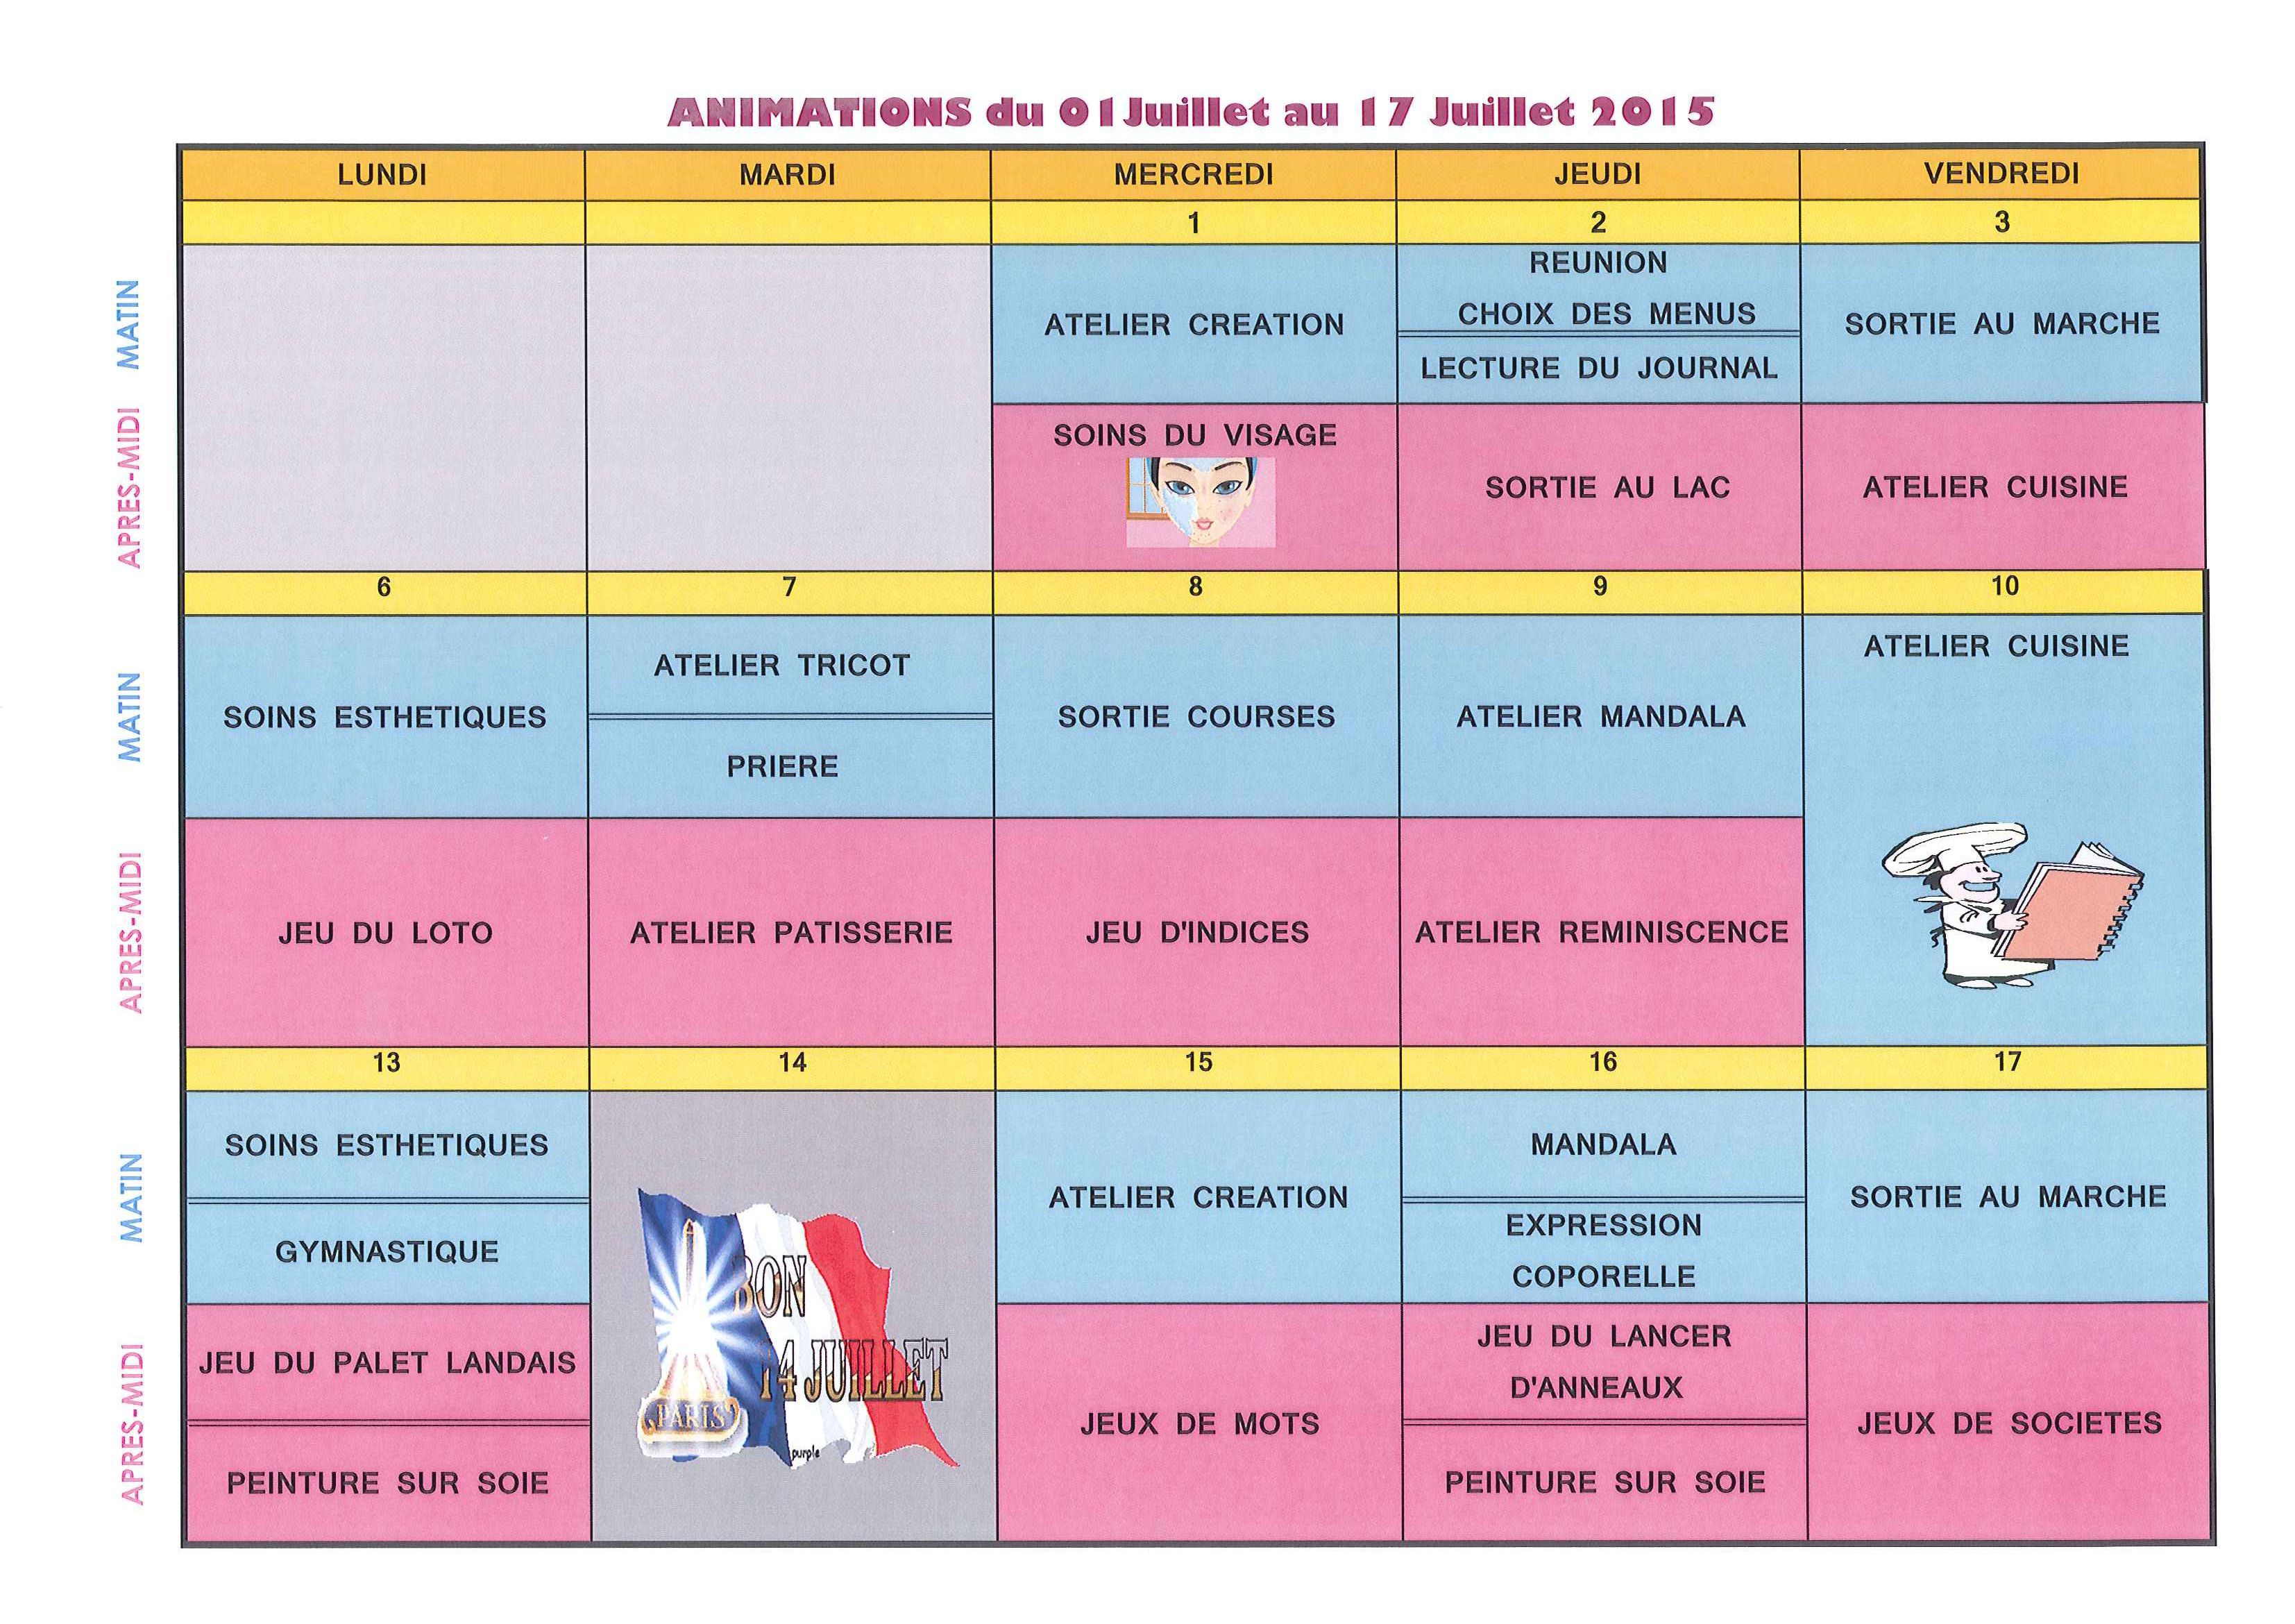 Planning des animations pour les r sidents du 01 au 17 for Animation musicale maison de retraite